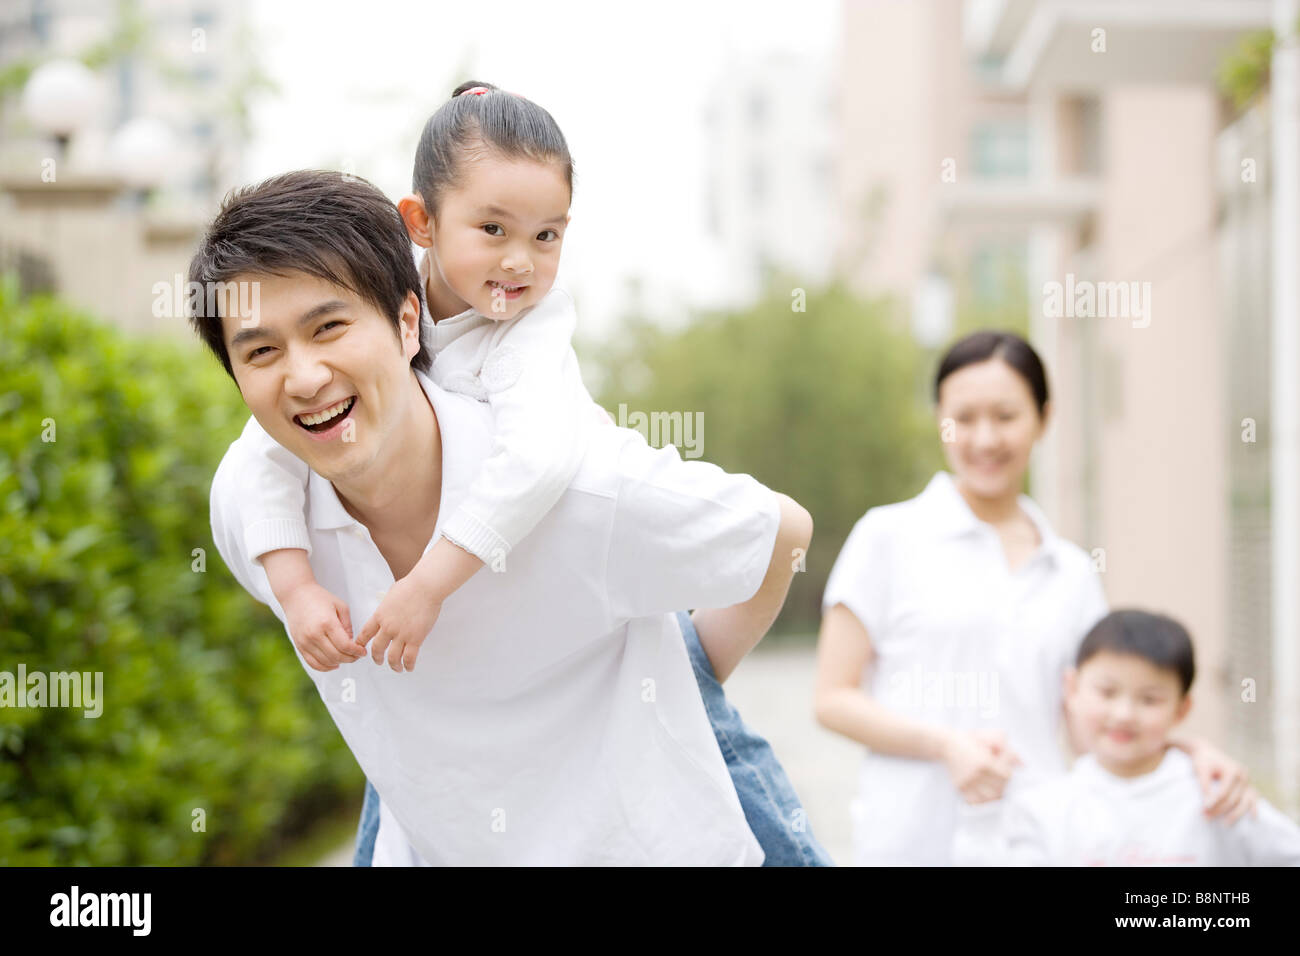 Father giving daughter piggyback mother and son in background - Stock Image